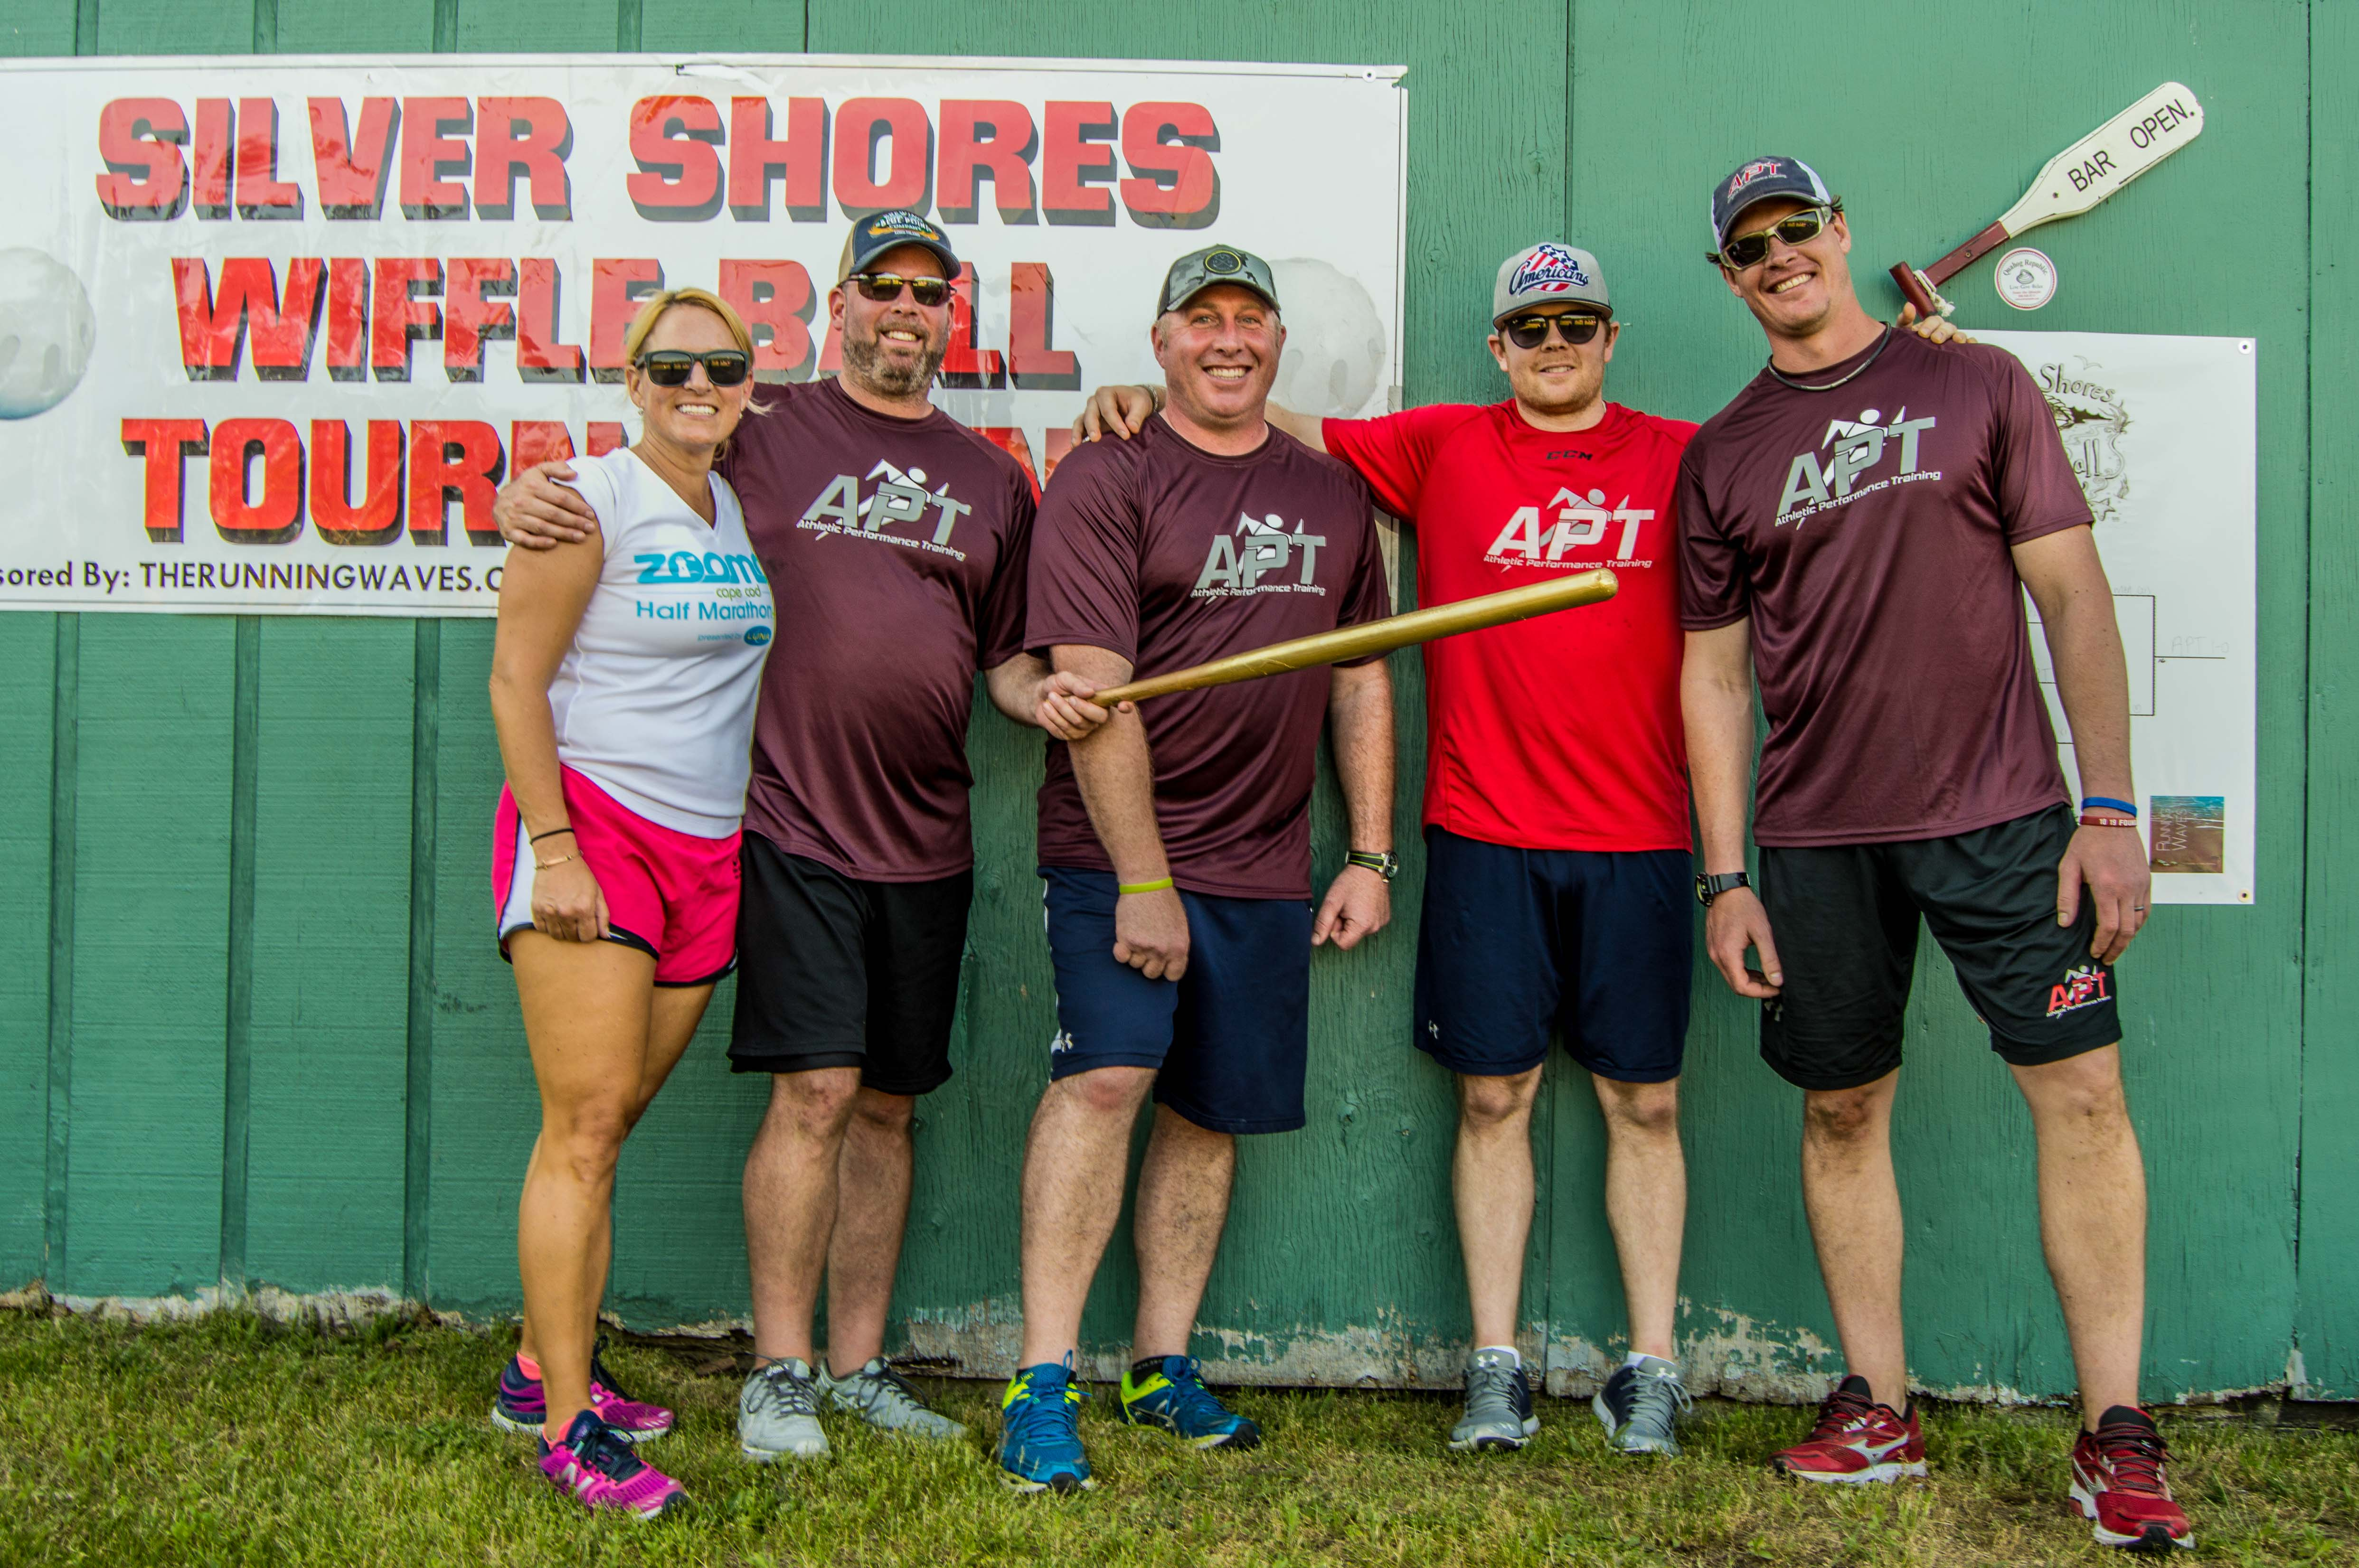 9th Annual Silver Shores Wiffle Ball Tournament